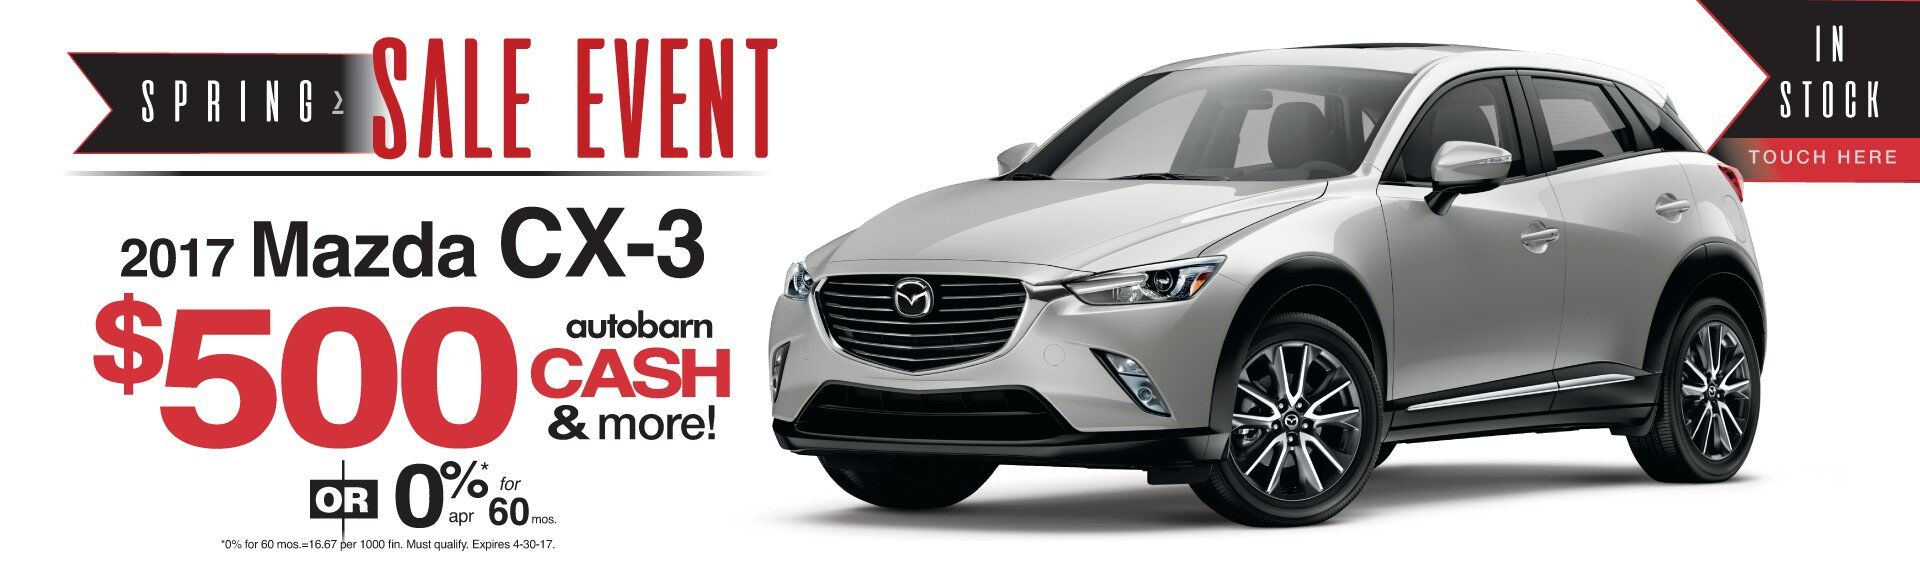 Spring Sales Event on 2017 Mazda CX-3